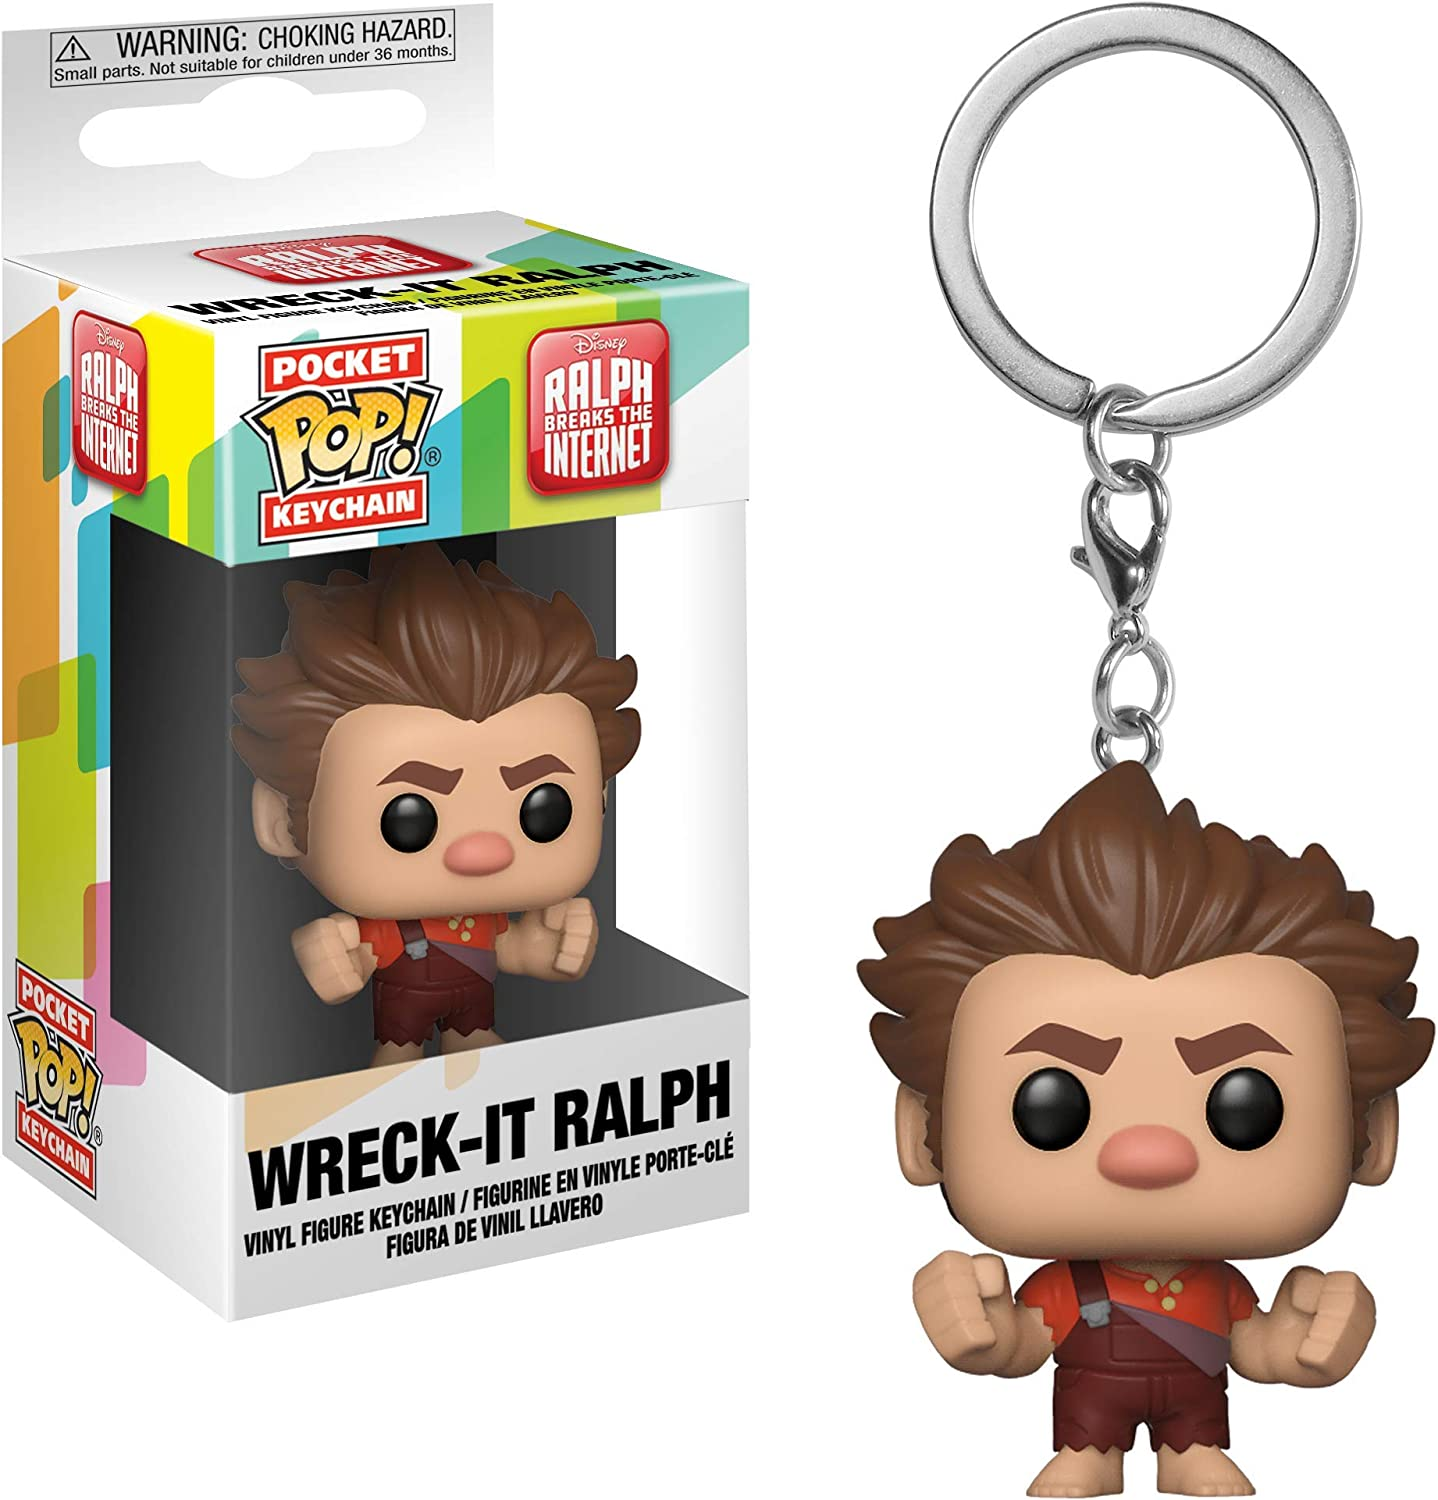 Funko Pop Keychain: Wreck-It Ralph 2 Toy, Multicolor